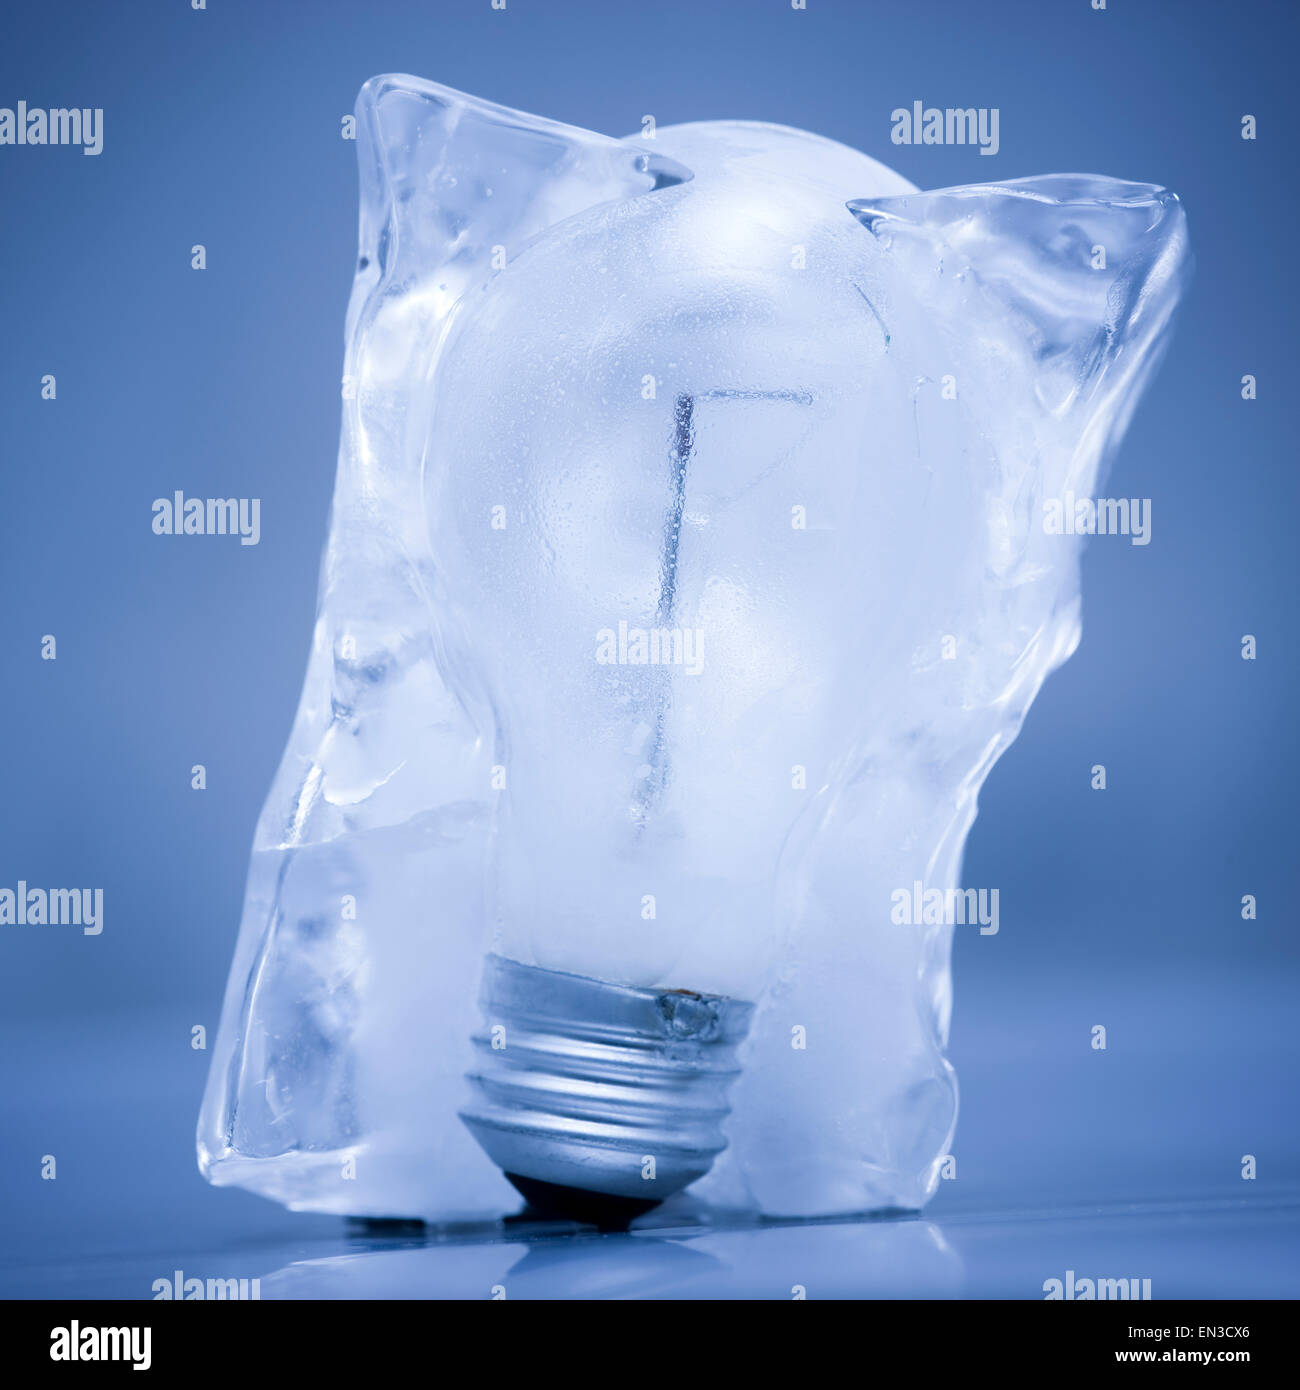 light bulb frozen in a block of ice stock photo 81825246 alamy